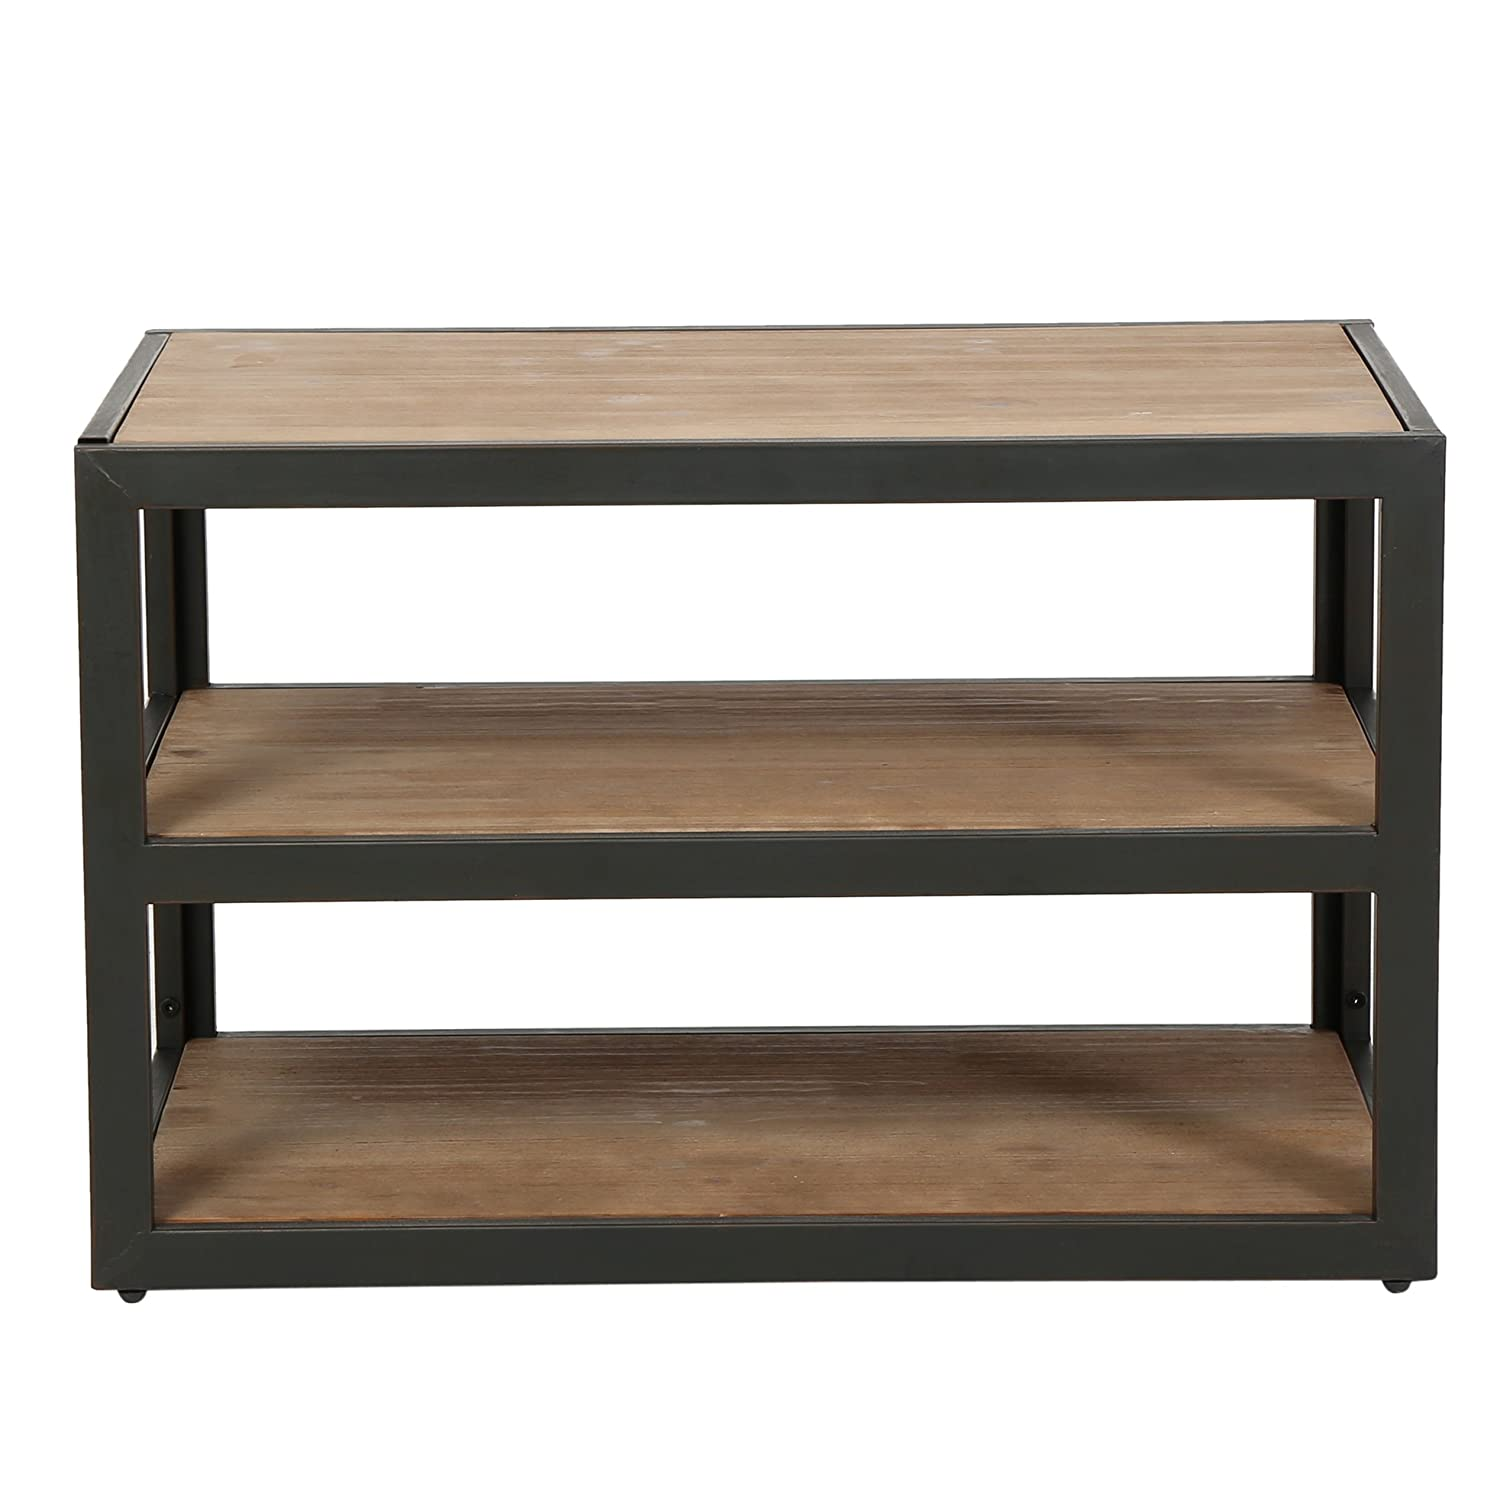 Modhaus Living Modern Industrial Rustic Brown 3-shelves Rectangle Shaped Tv  Stand Media Console | Wooden Top And Black Metal Frame, Living Room Decor